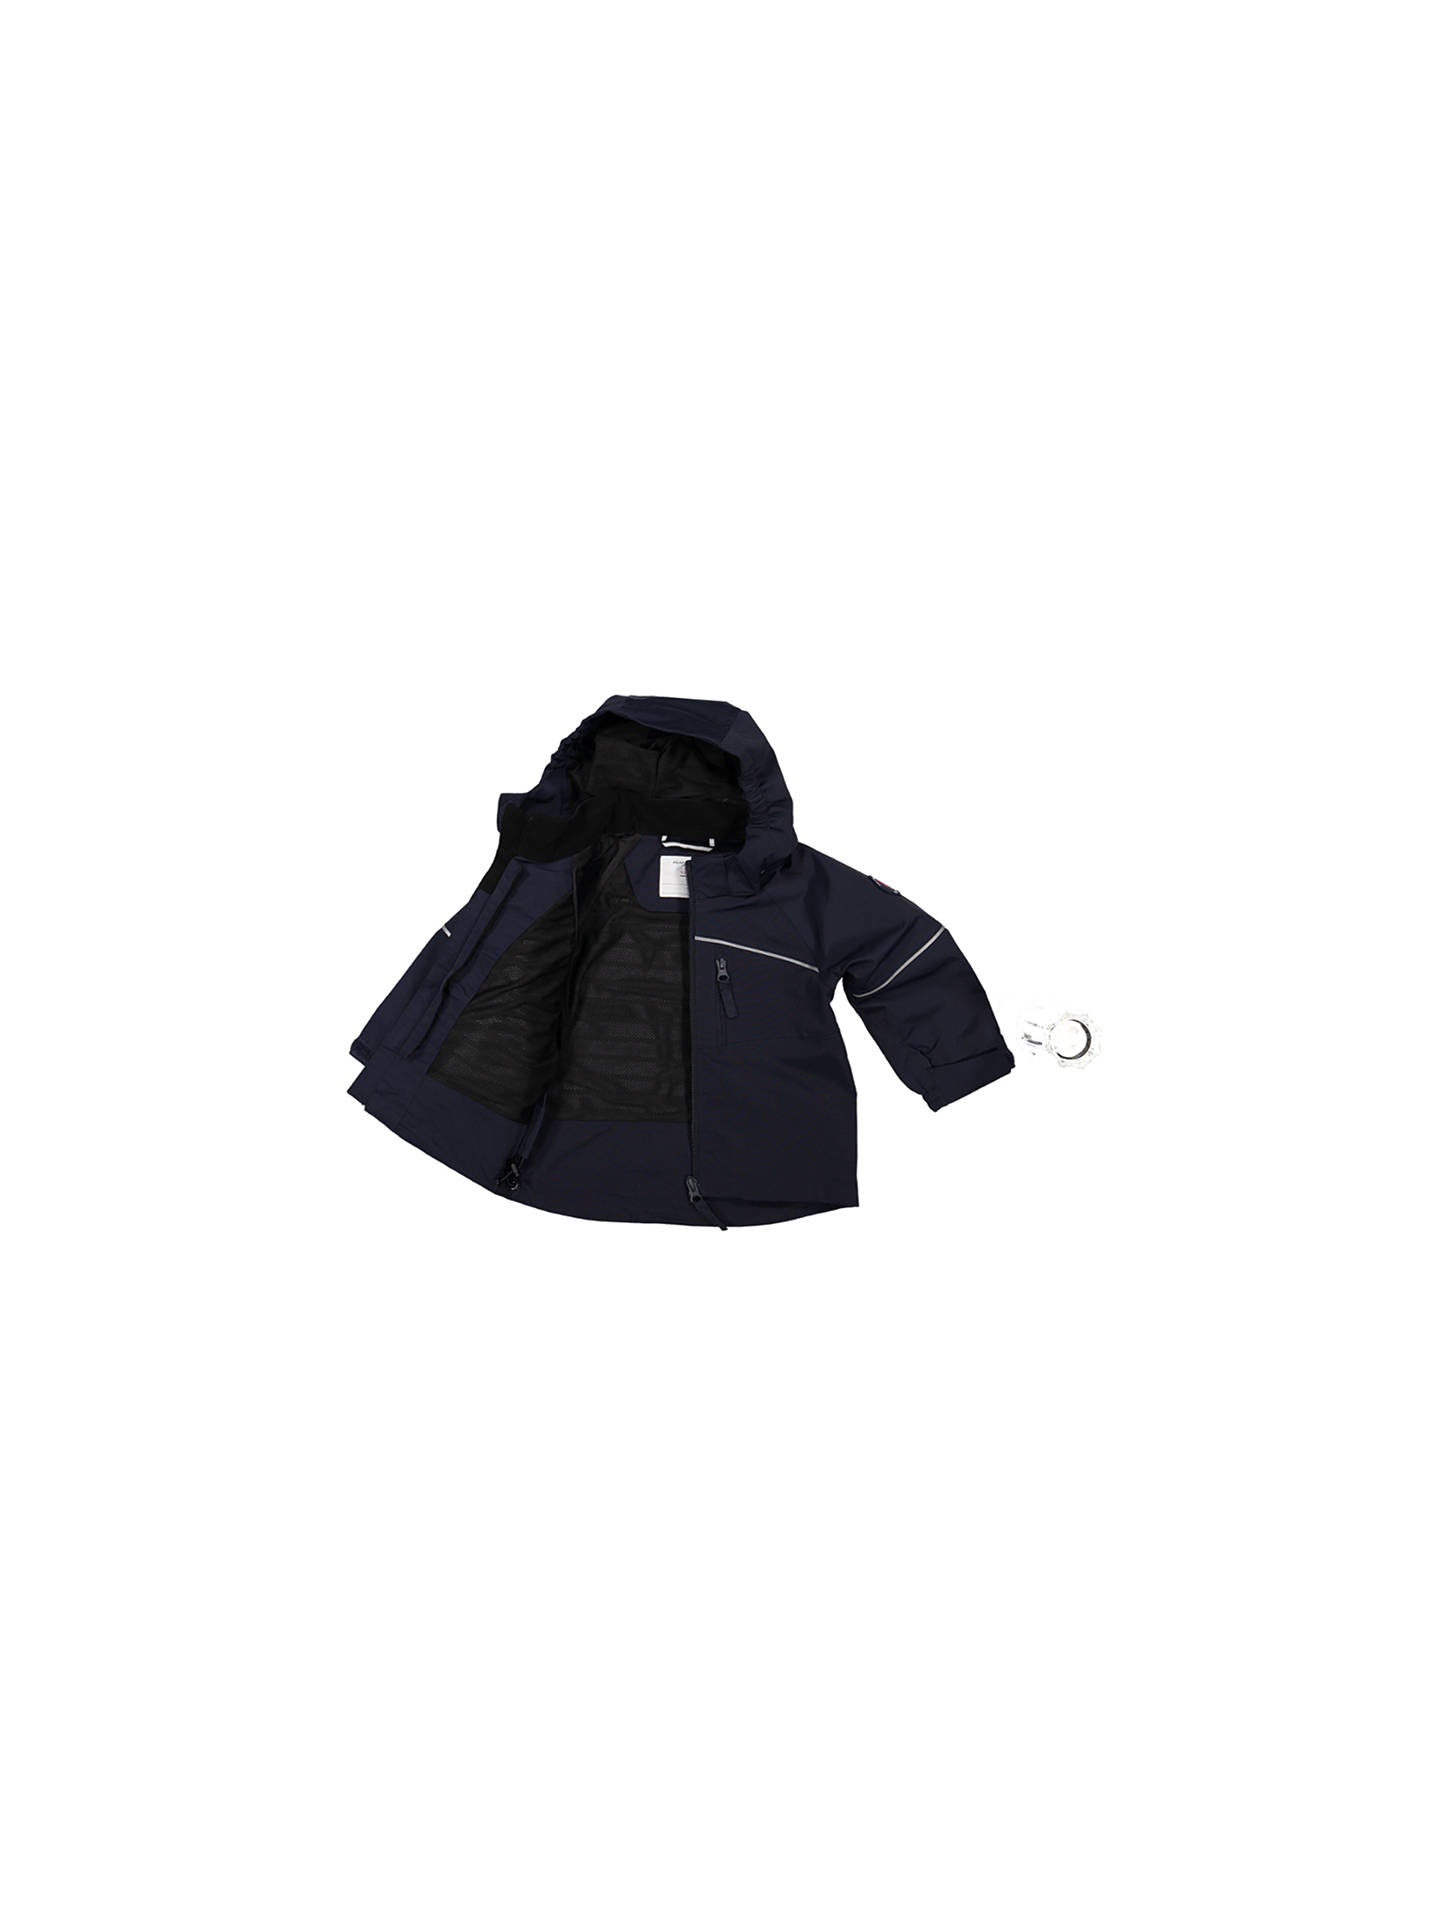 Buy Polarn O. Pyret Baby Shell Coat, Navy, 18-24 months Online at johnlewis.com